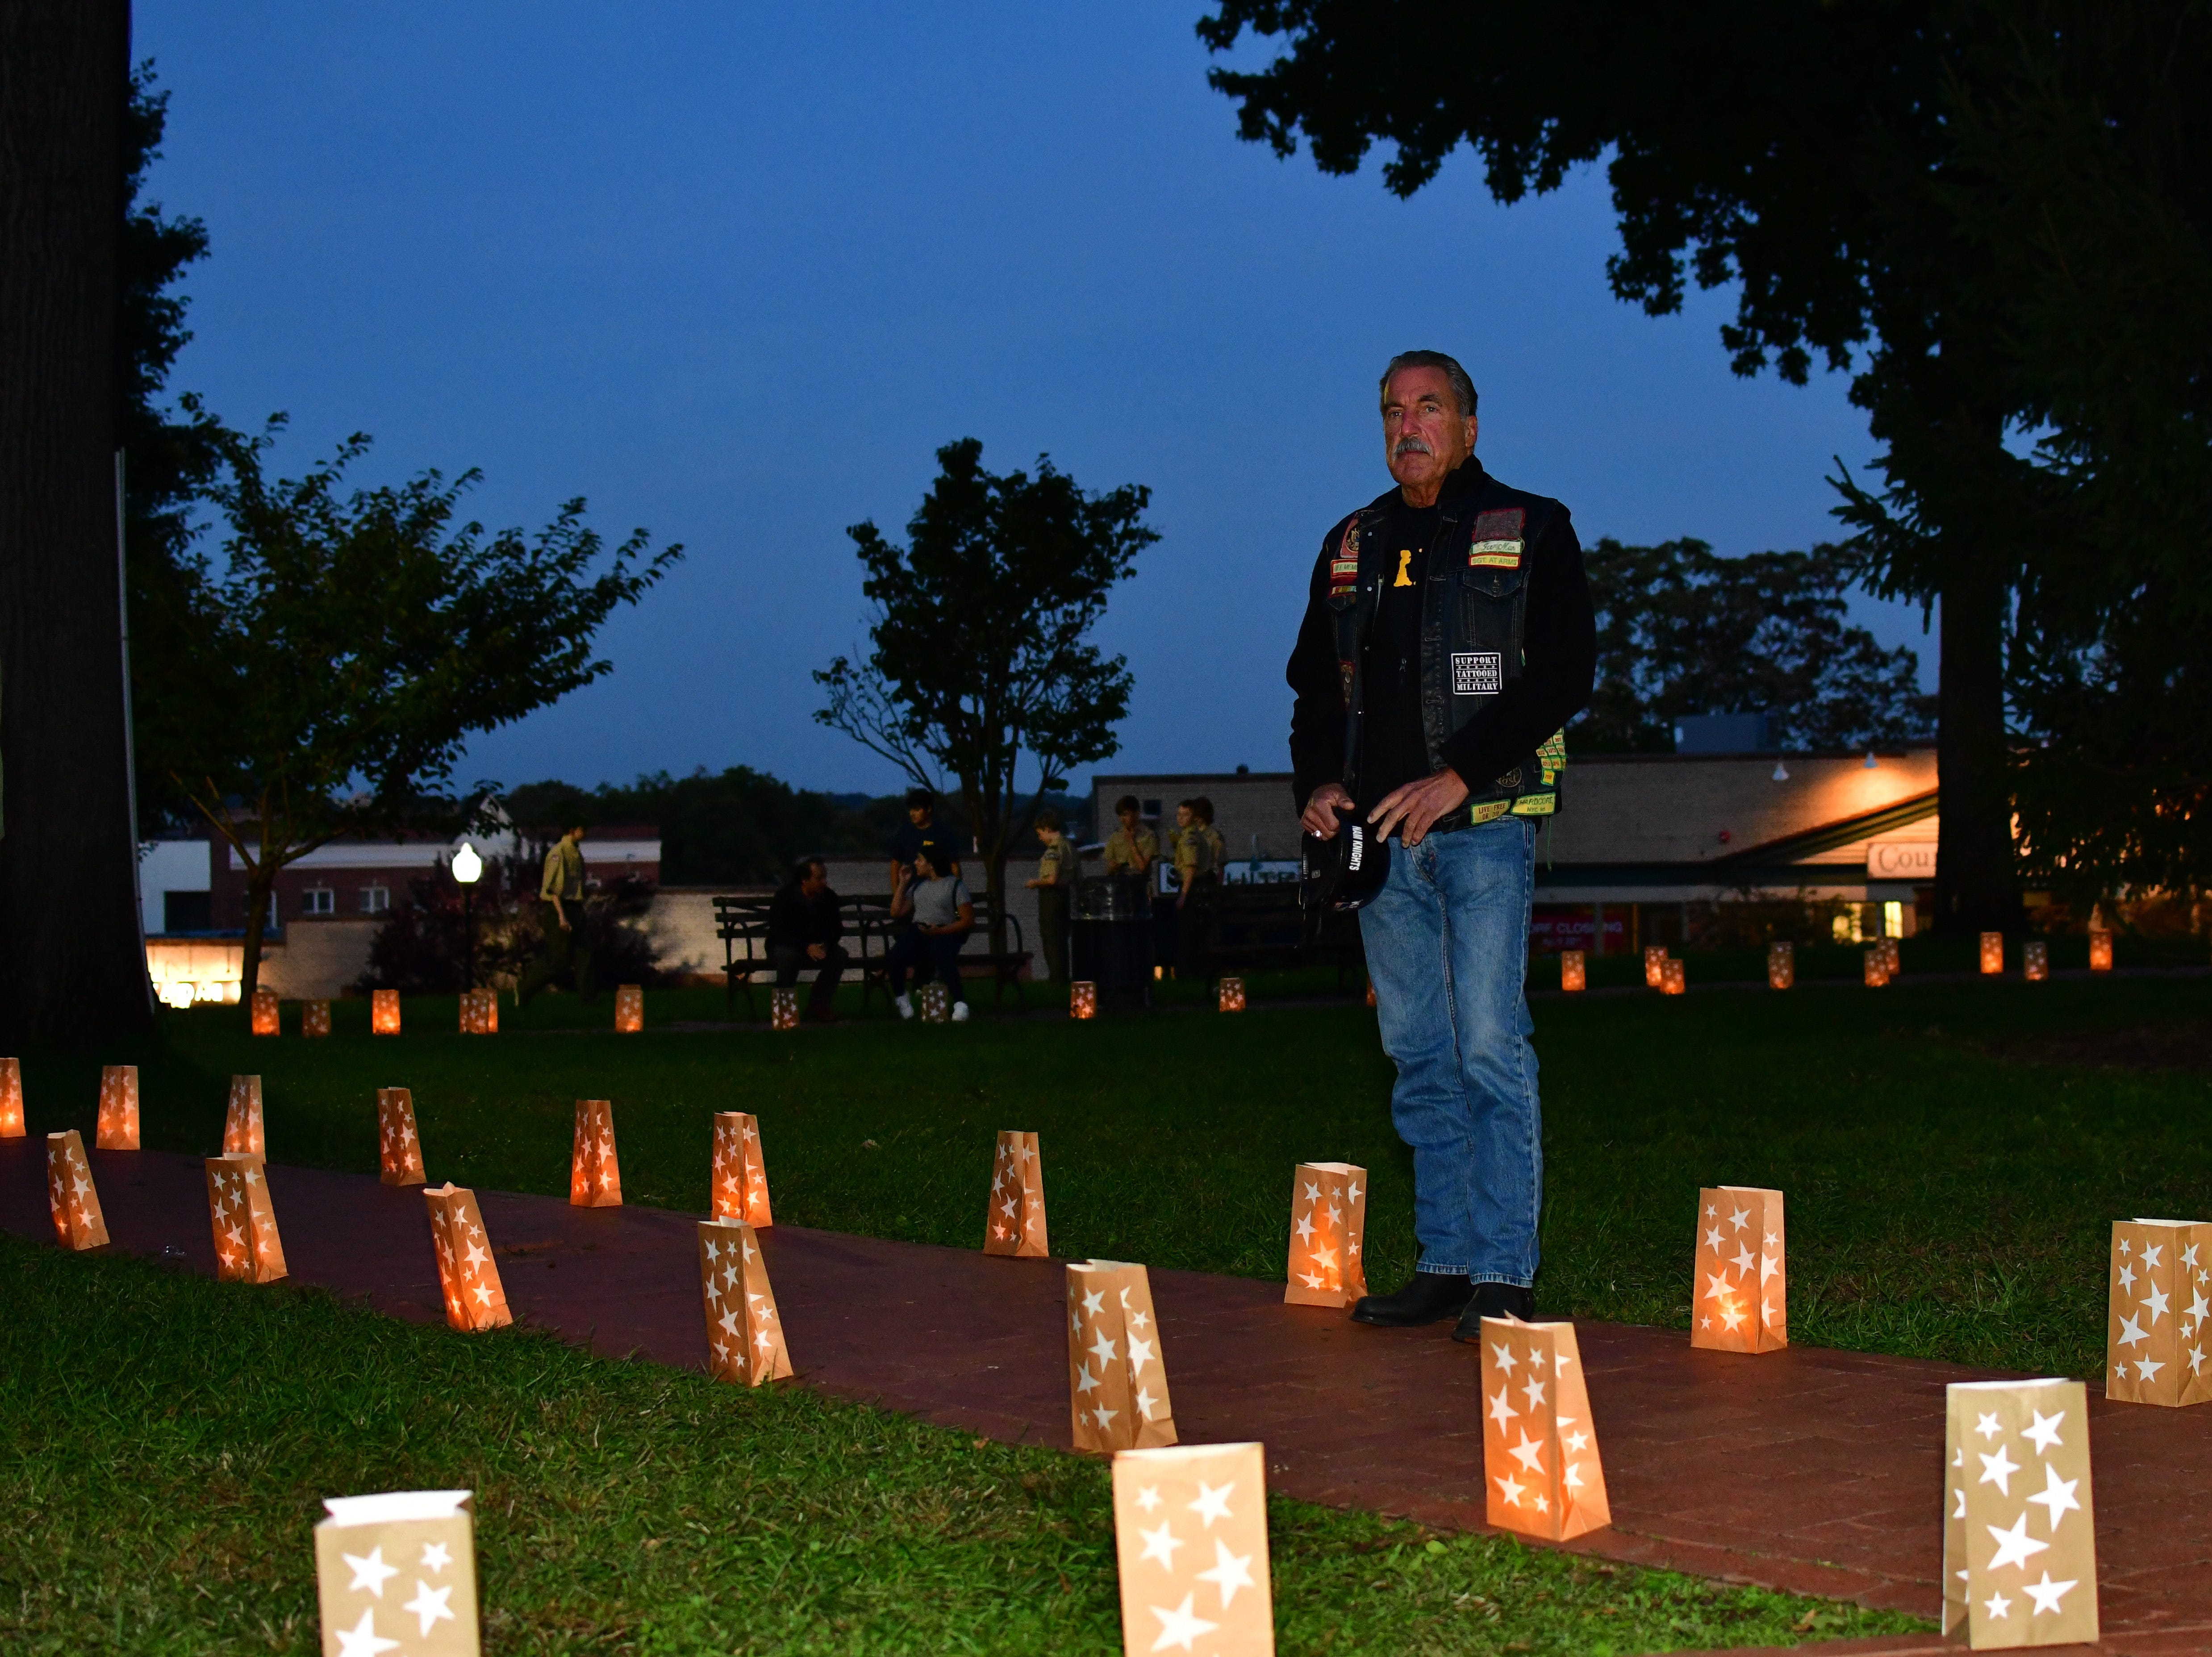 Michael Janke. The Gold Star Mother's Day Committee sponsored its eighth annual event commemorating Gold Star Mother's Day on Sept. 30, at Van Neste Park, Ridgewood. After a short ceremony, hundreds of luminaries were lit to honor Gold Star Mothers (moms who had lost sons and daughters to the war) and their families.